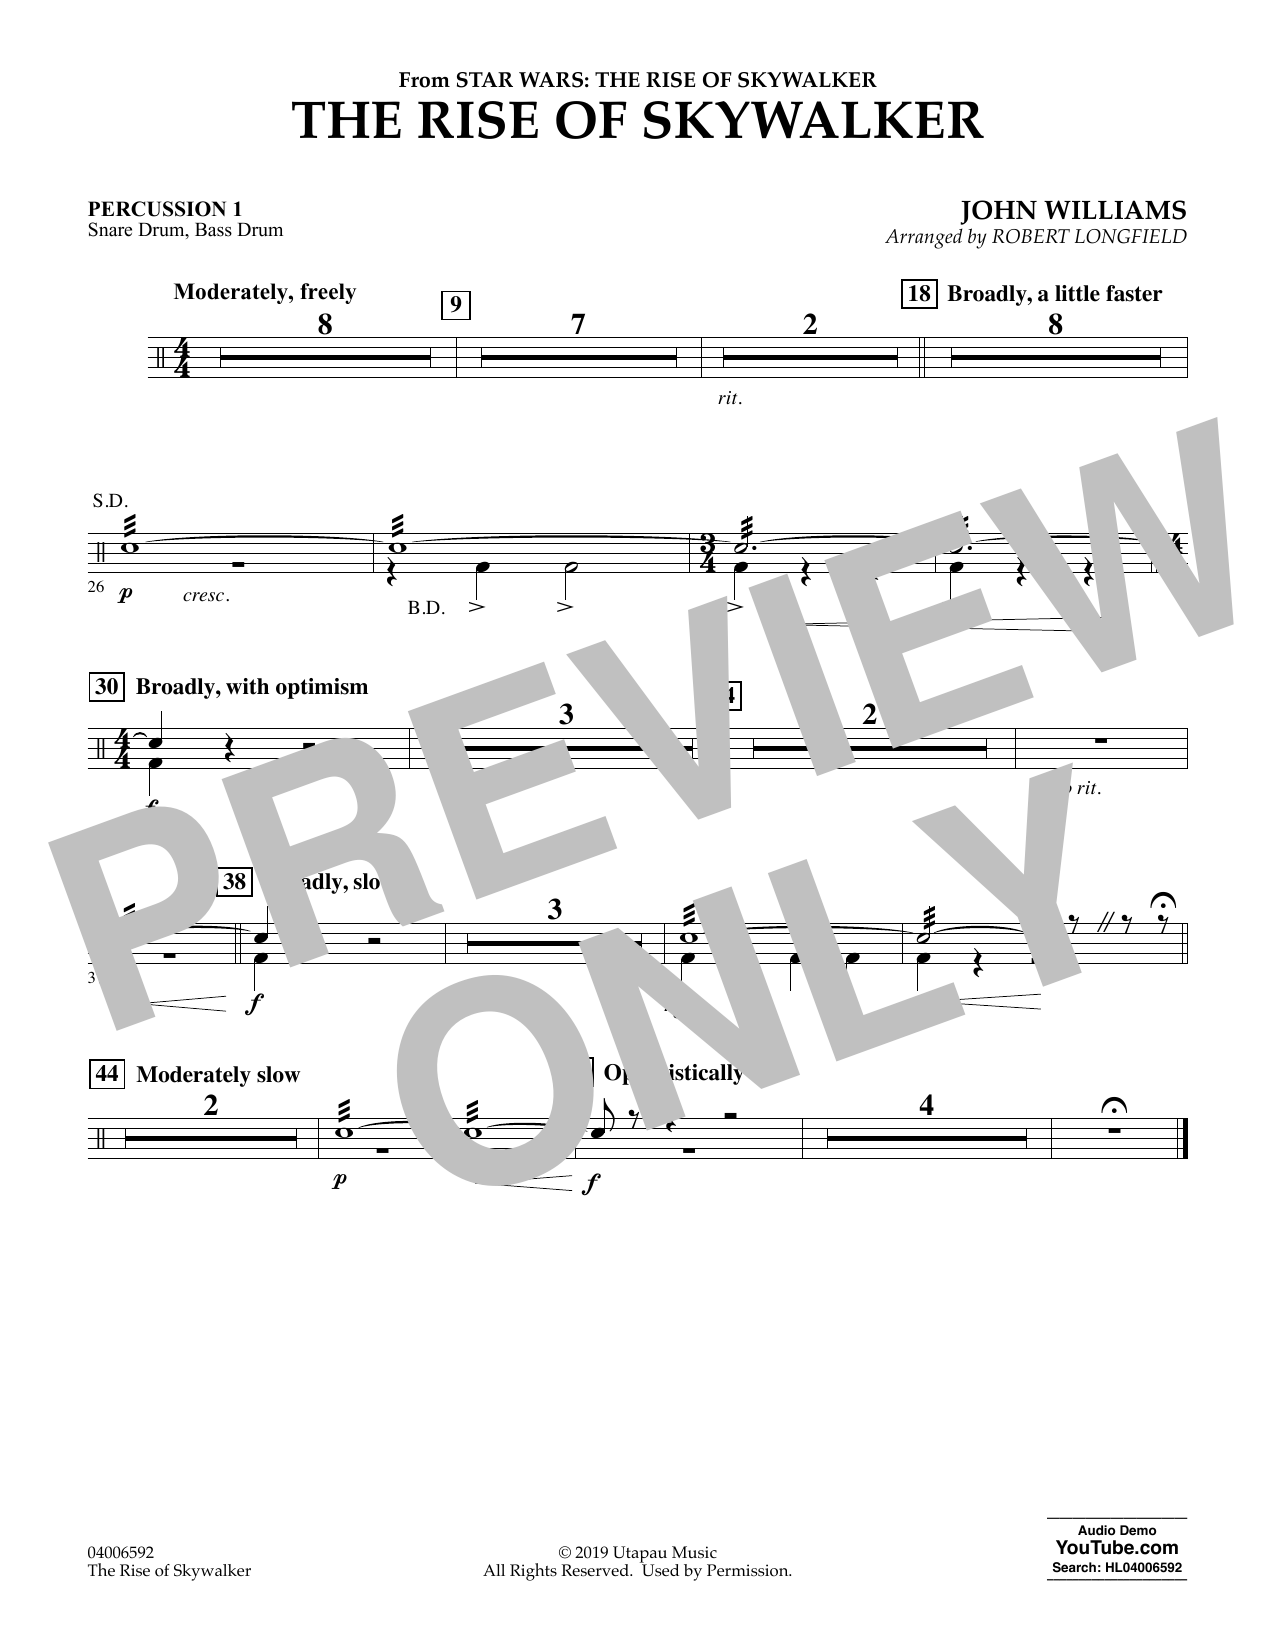 John Williams The Rise Of Skywalker From Star Wars The Rise Of Skywalker Percussion 1 Sheet Music Download Pdf Score 454612